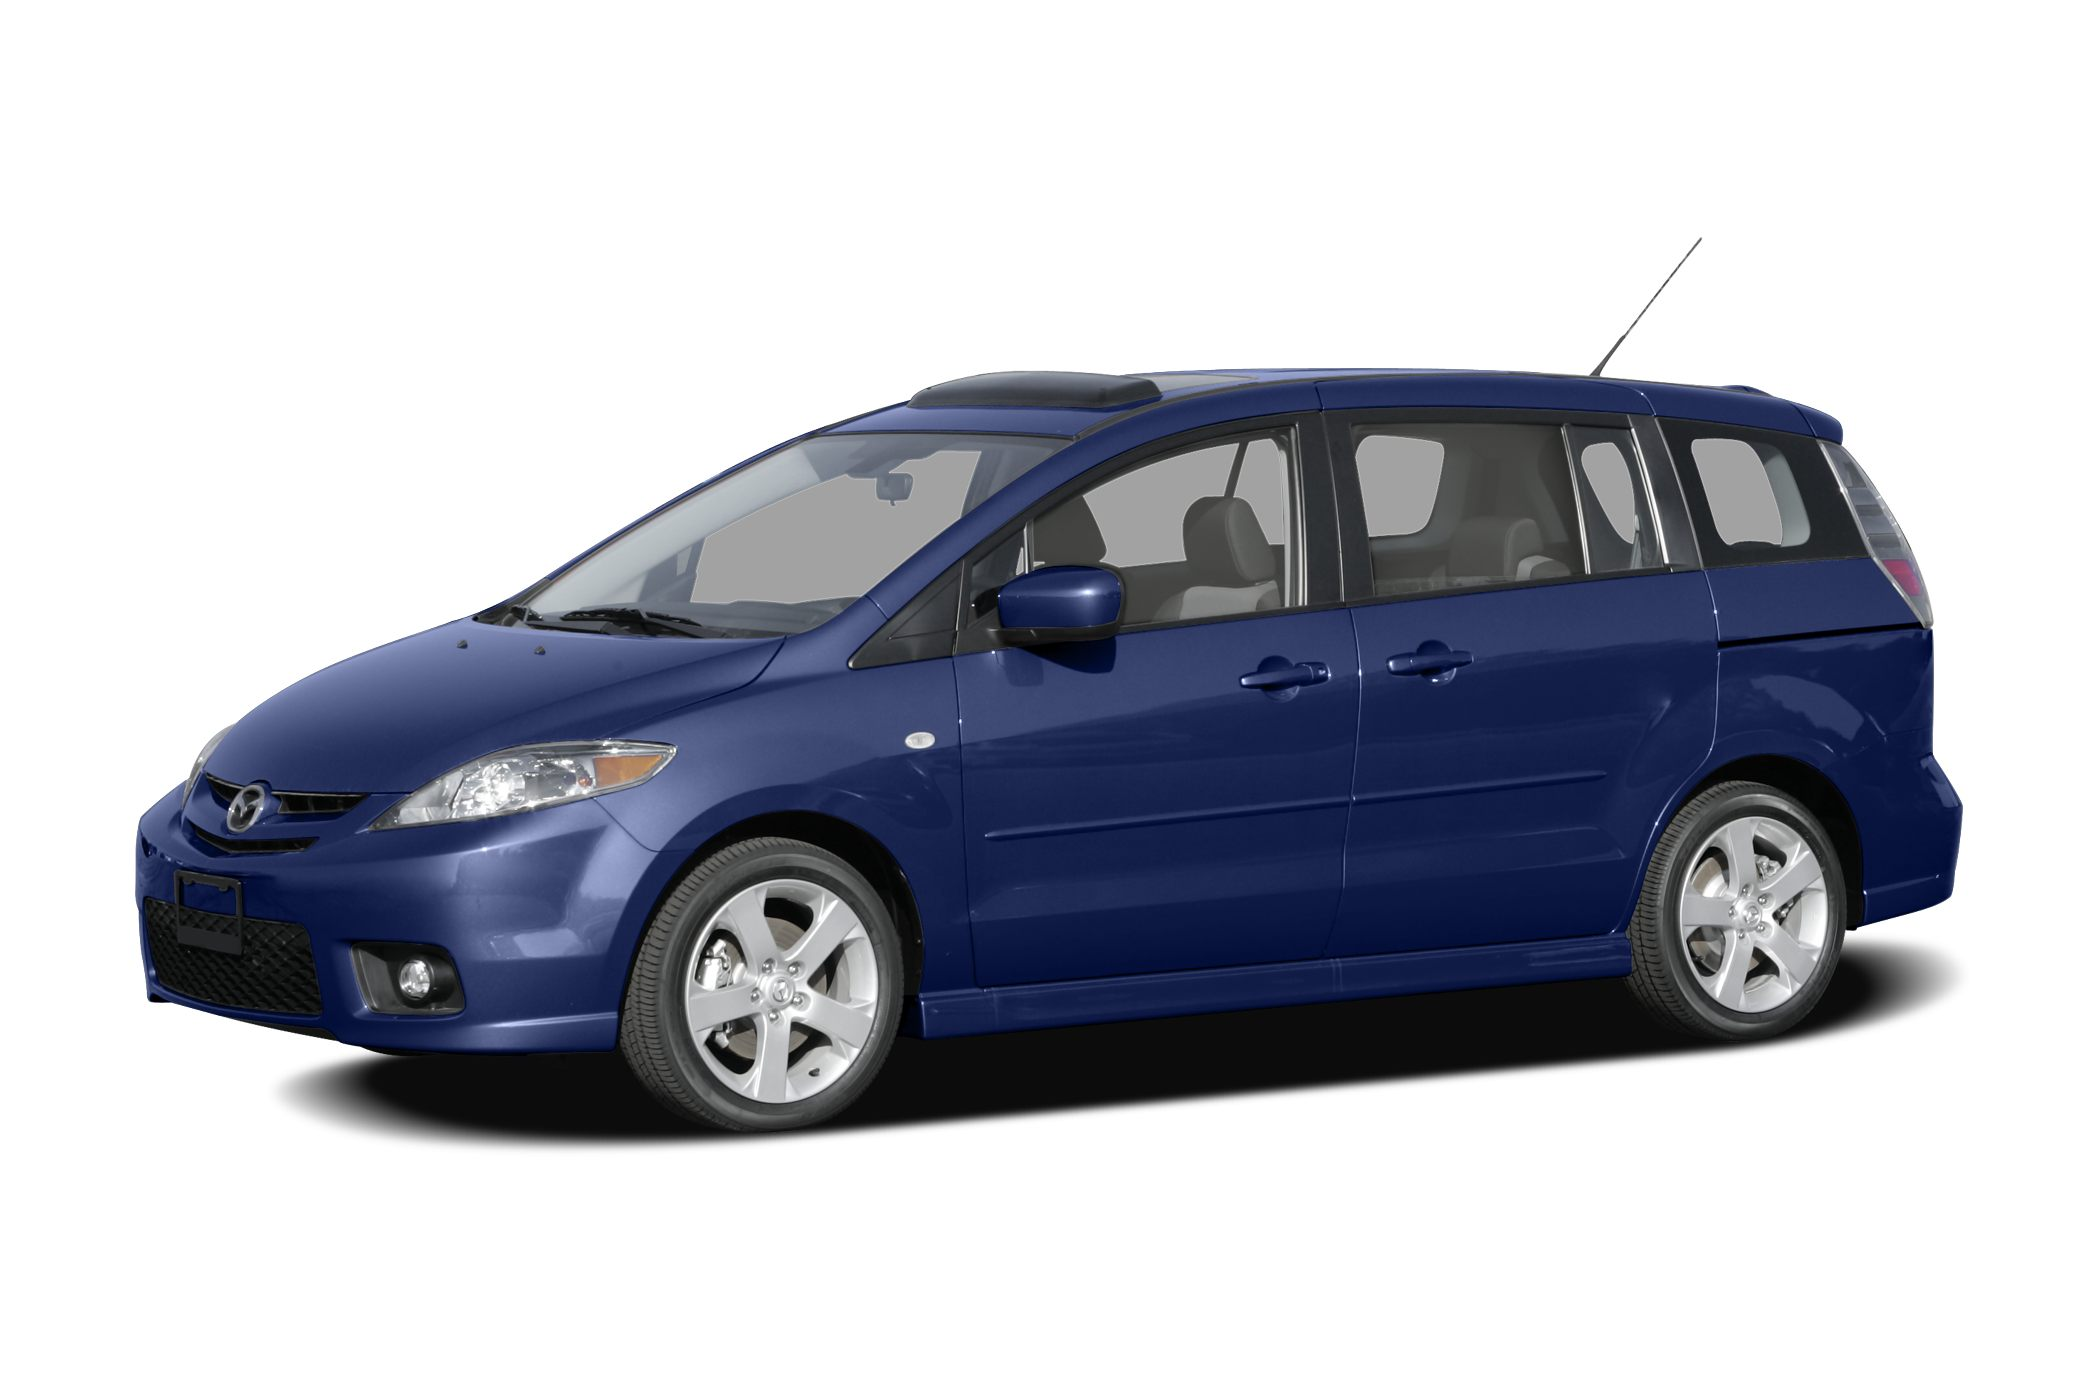 2007 Mazda Mazda5 Touring Wagon for sale in New York for $6,999 with 50,119 miles